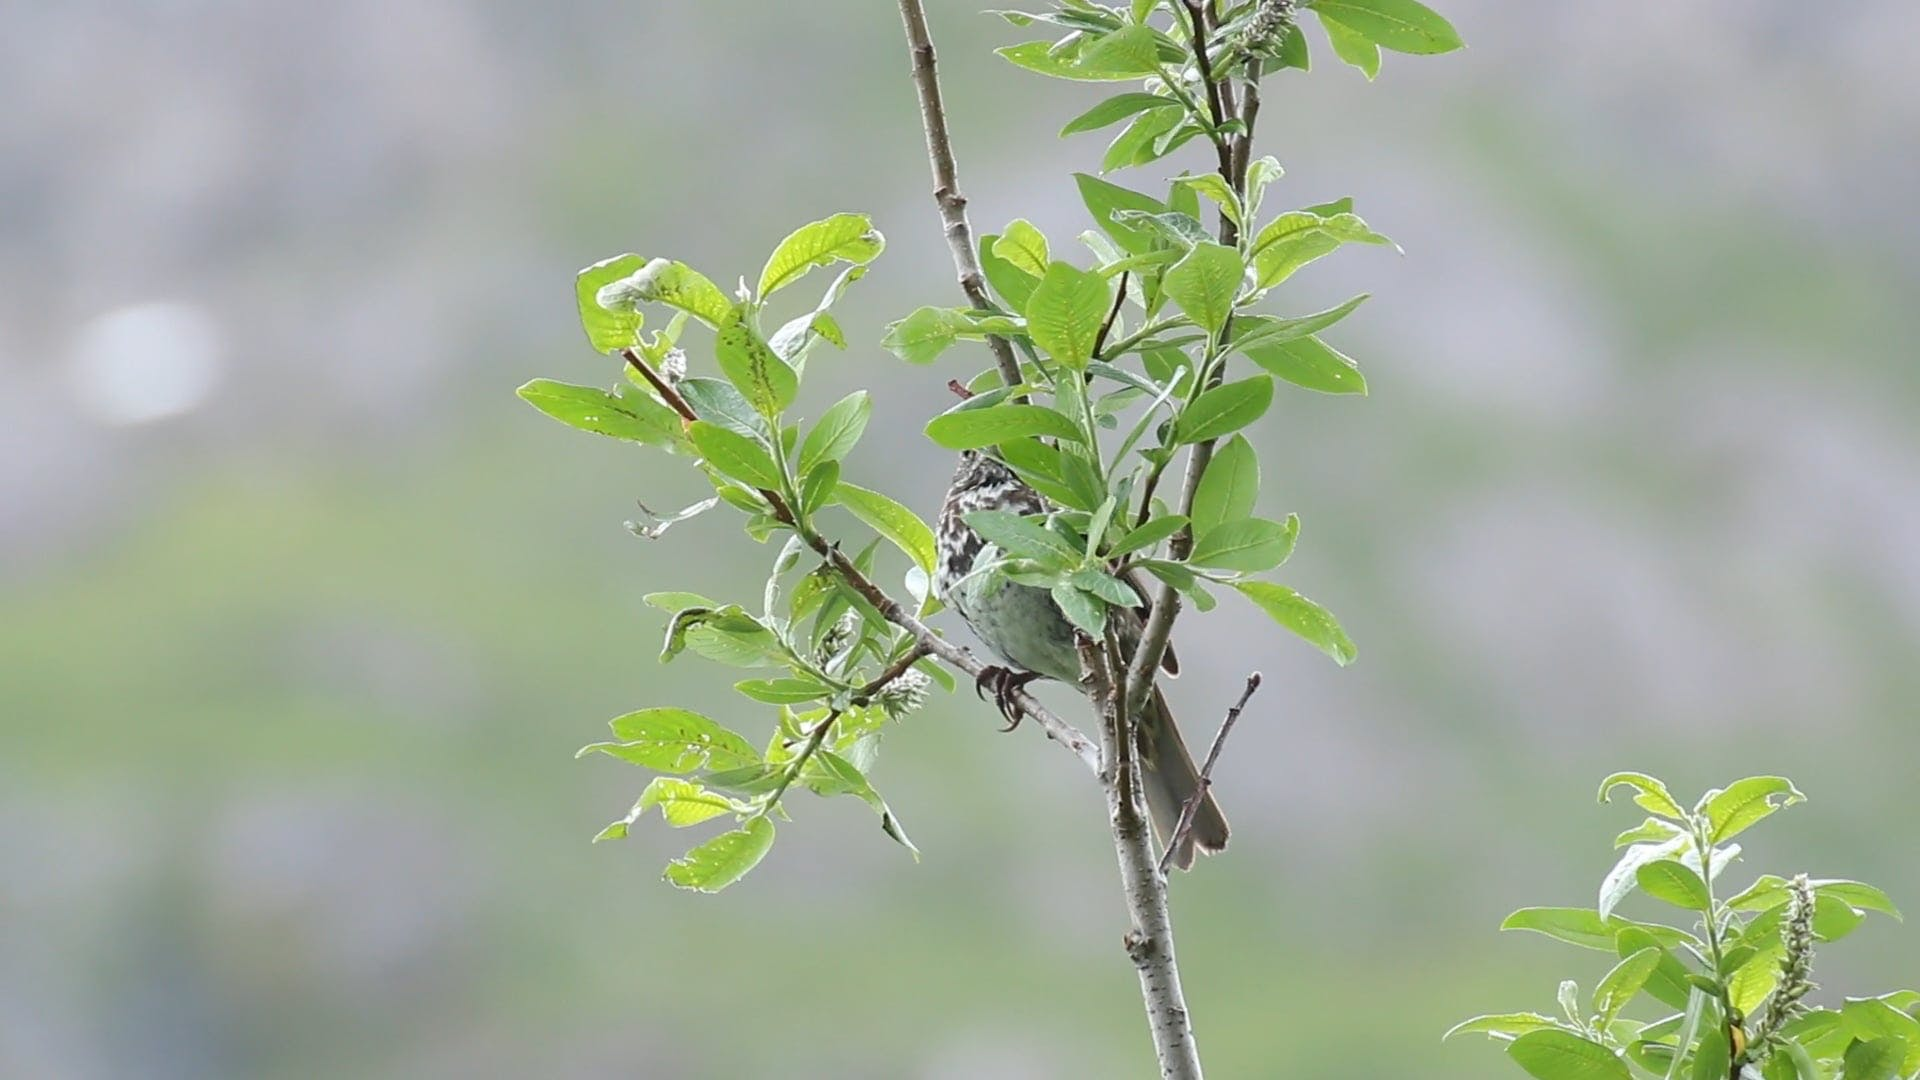 Close View Of A Bird In A Tree